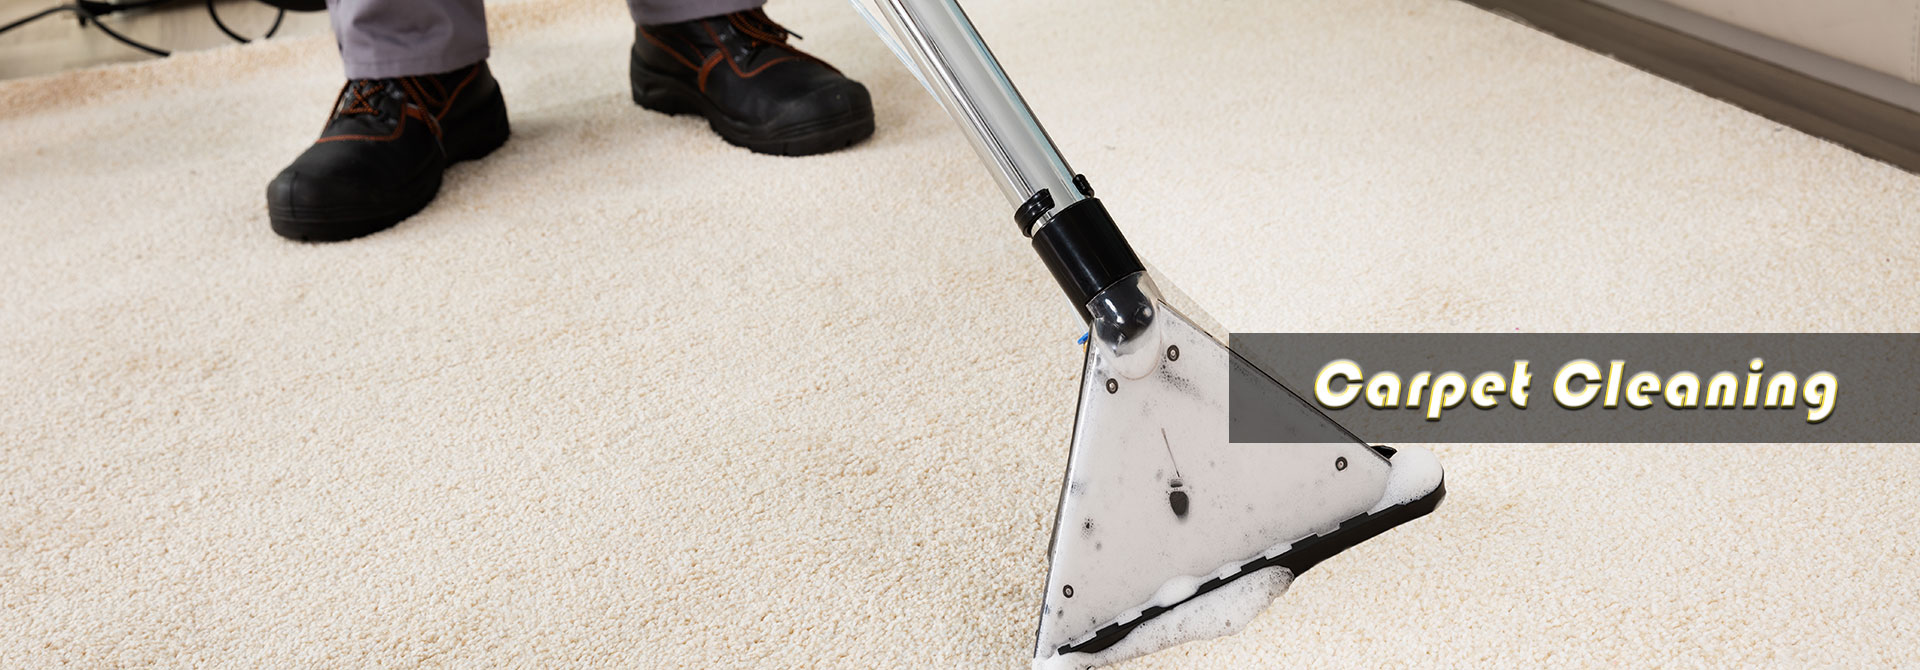 Carpet Cleaning Services Warner Robins Ga